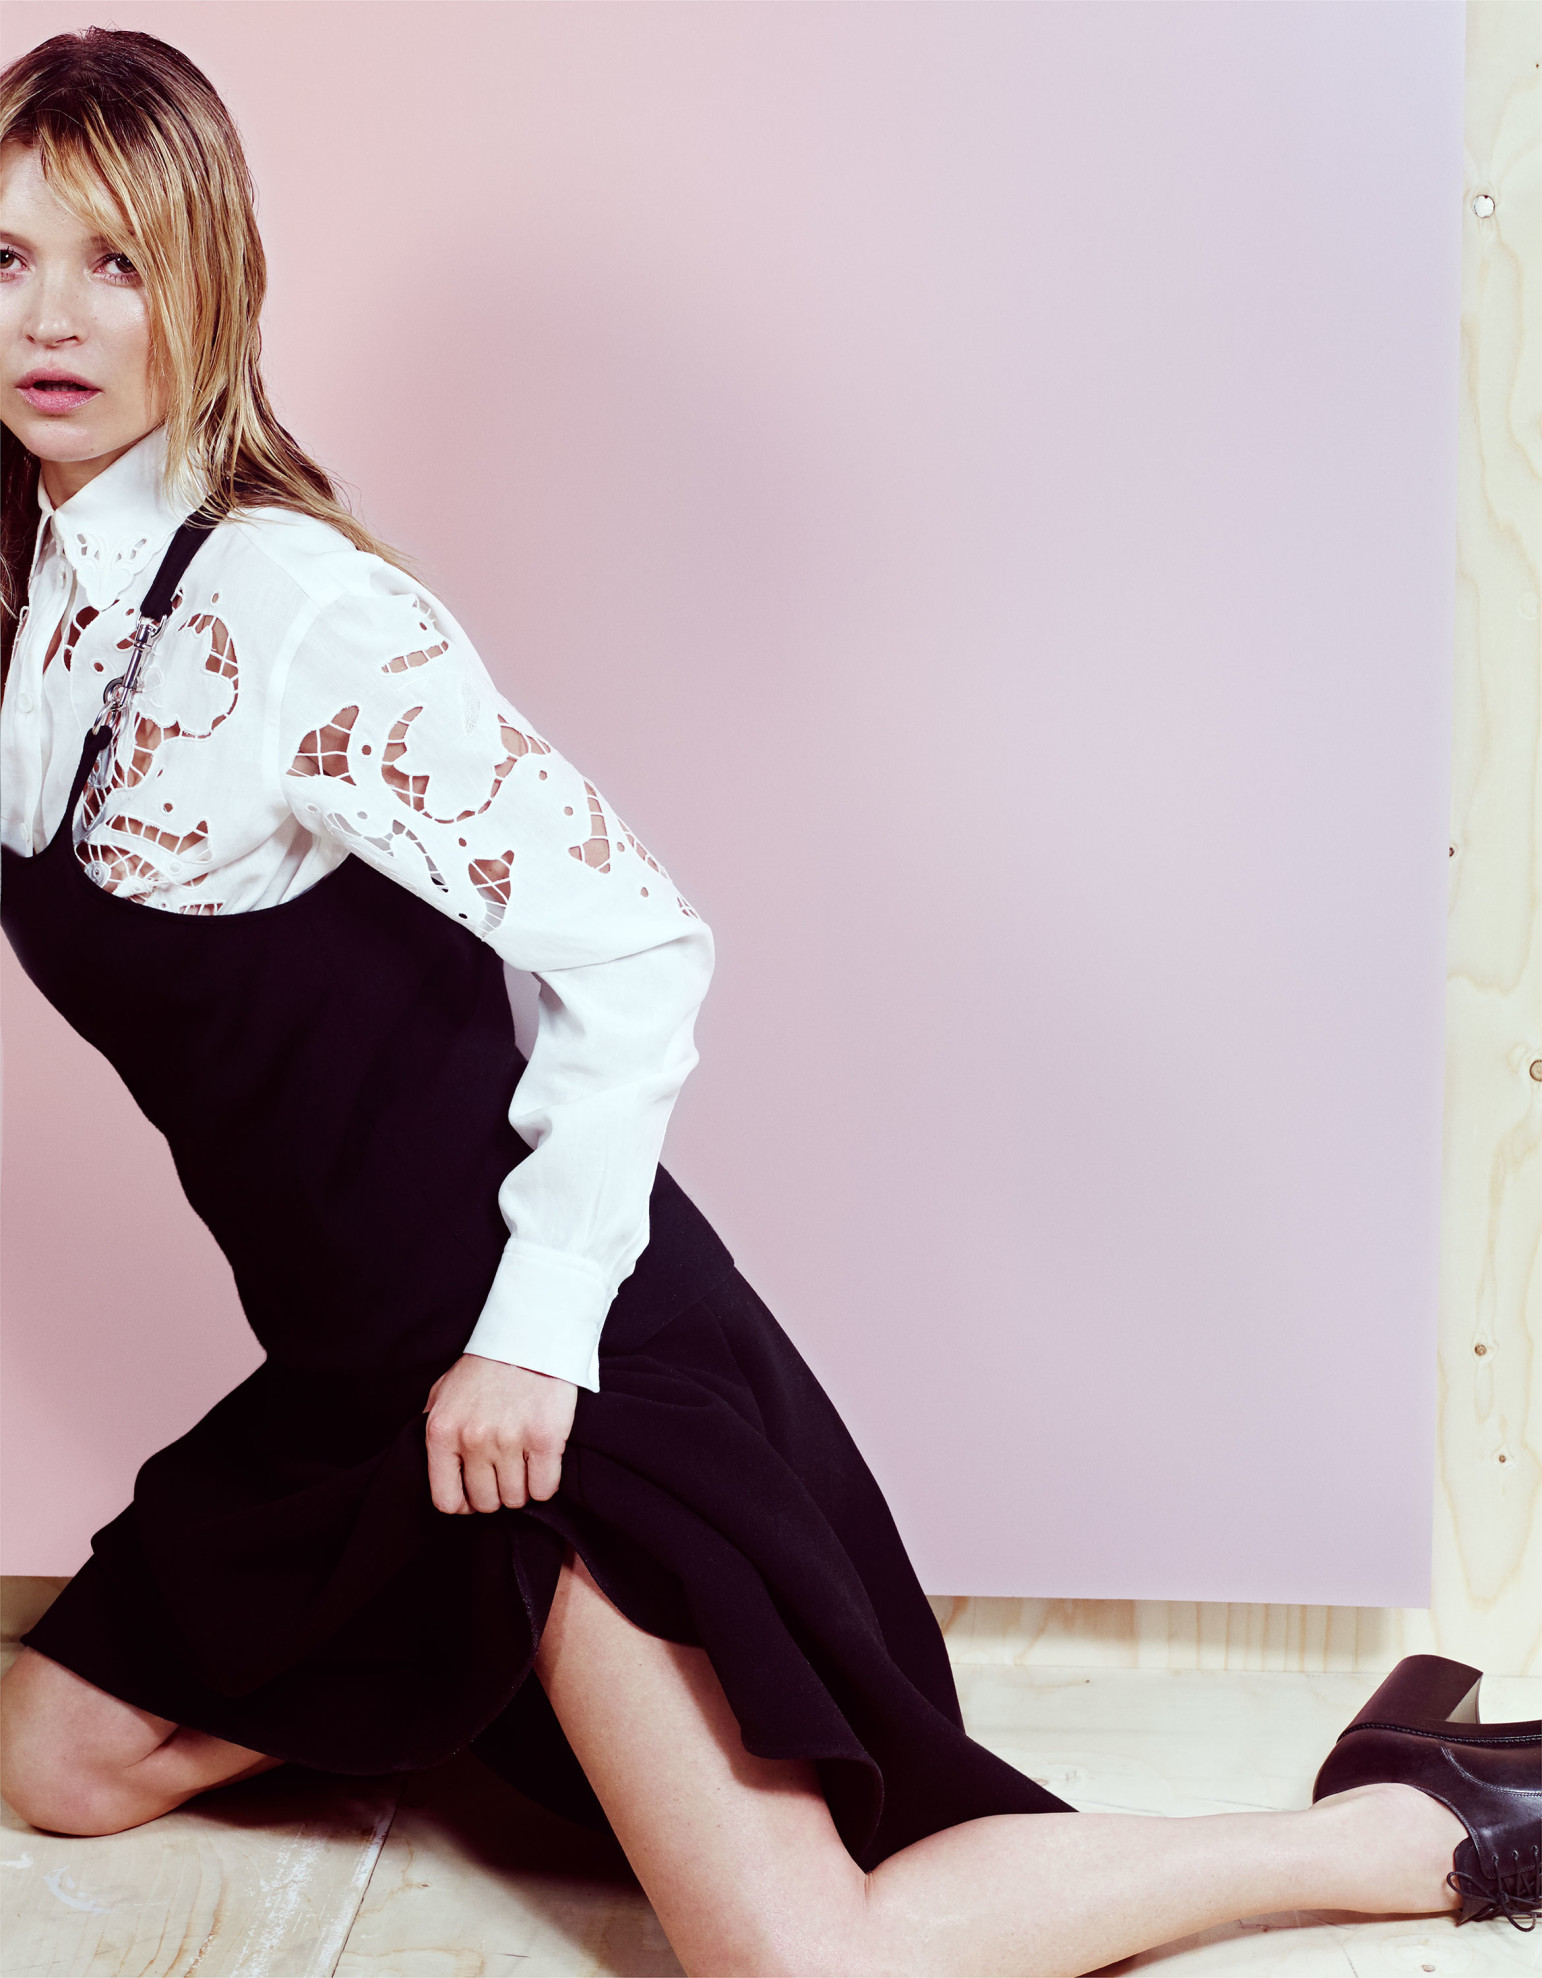 kate-moss-a-piece-of-kate-craig-mc-dean-may-2015-w-magazine-02